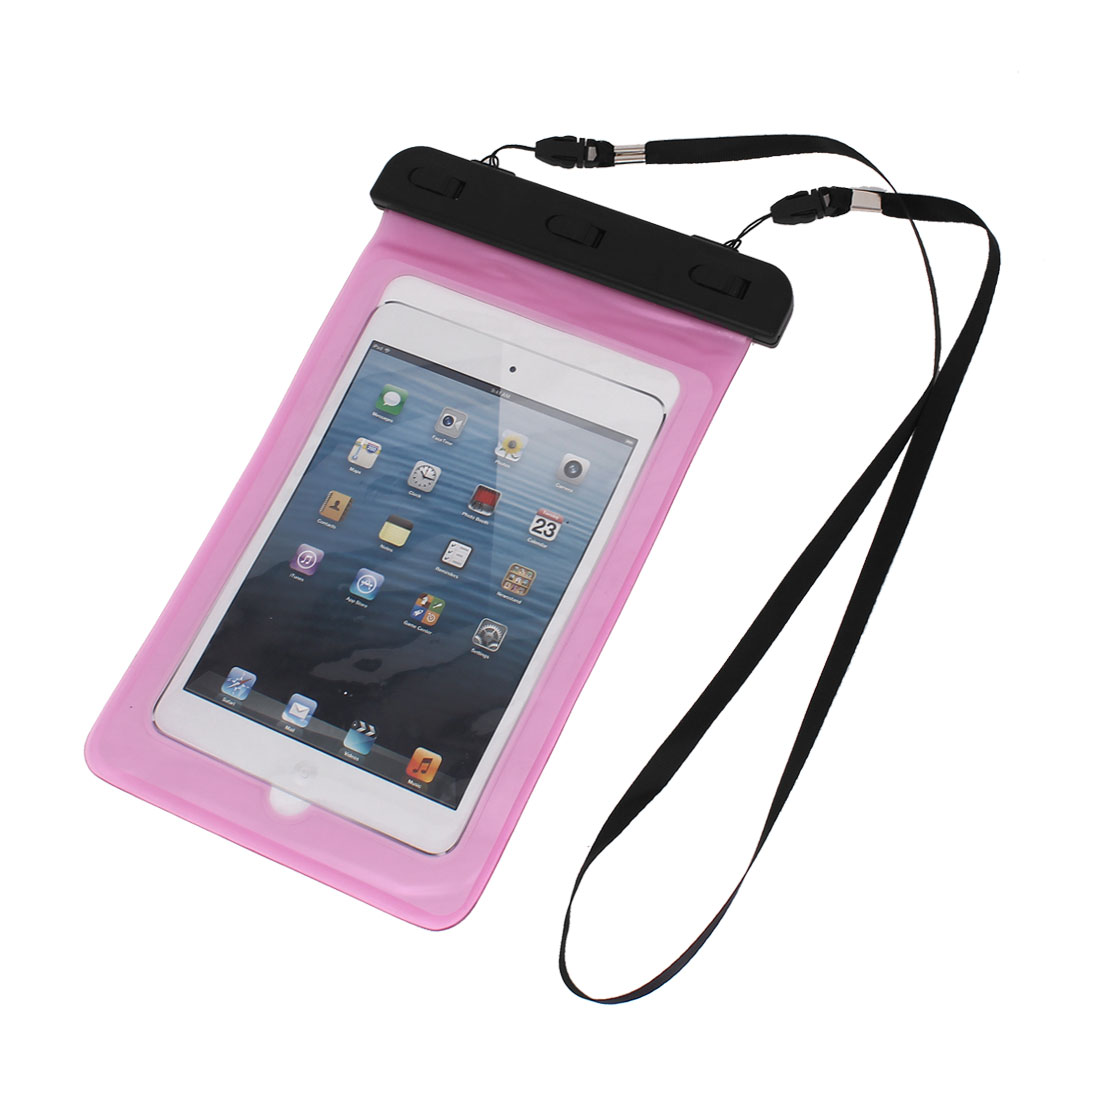 Waterproof Bag Case Holder Pouch Pink for iPad mini2/3 w Neck Strap